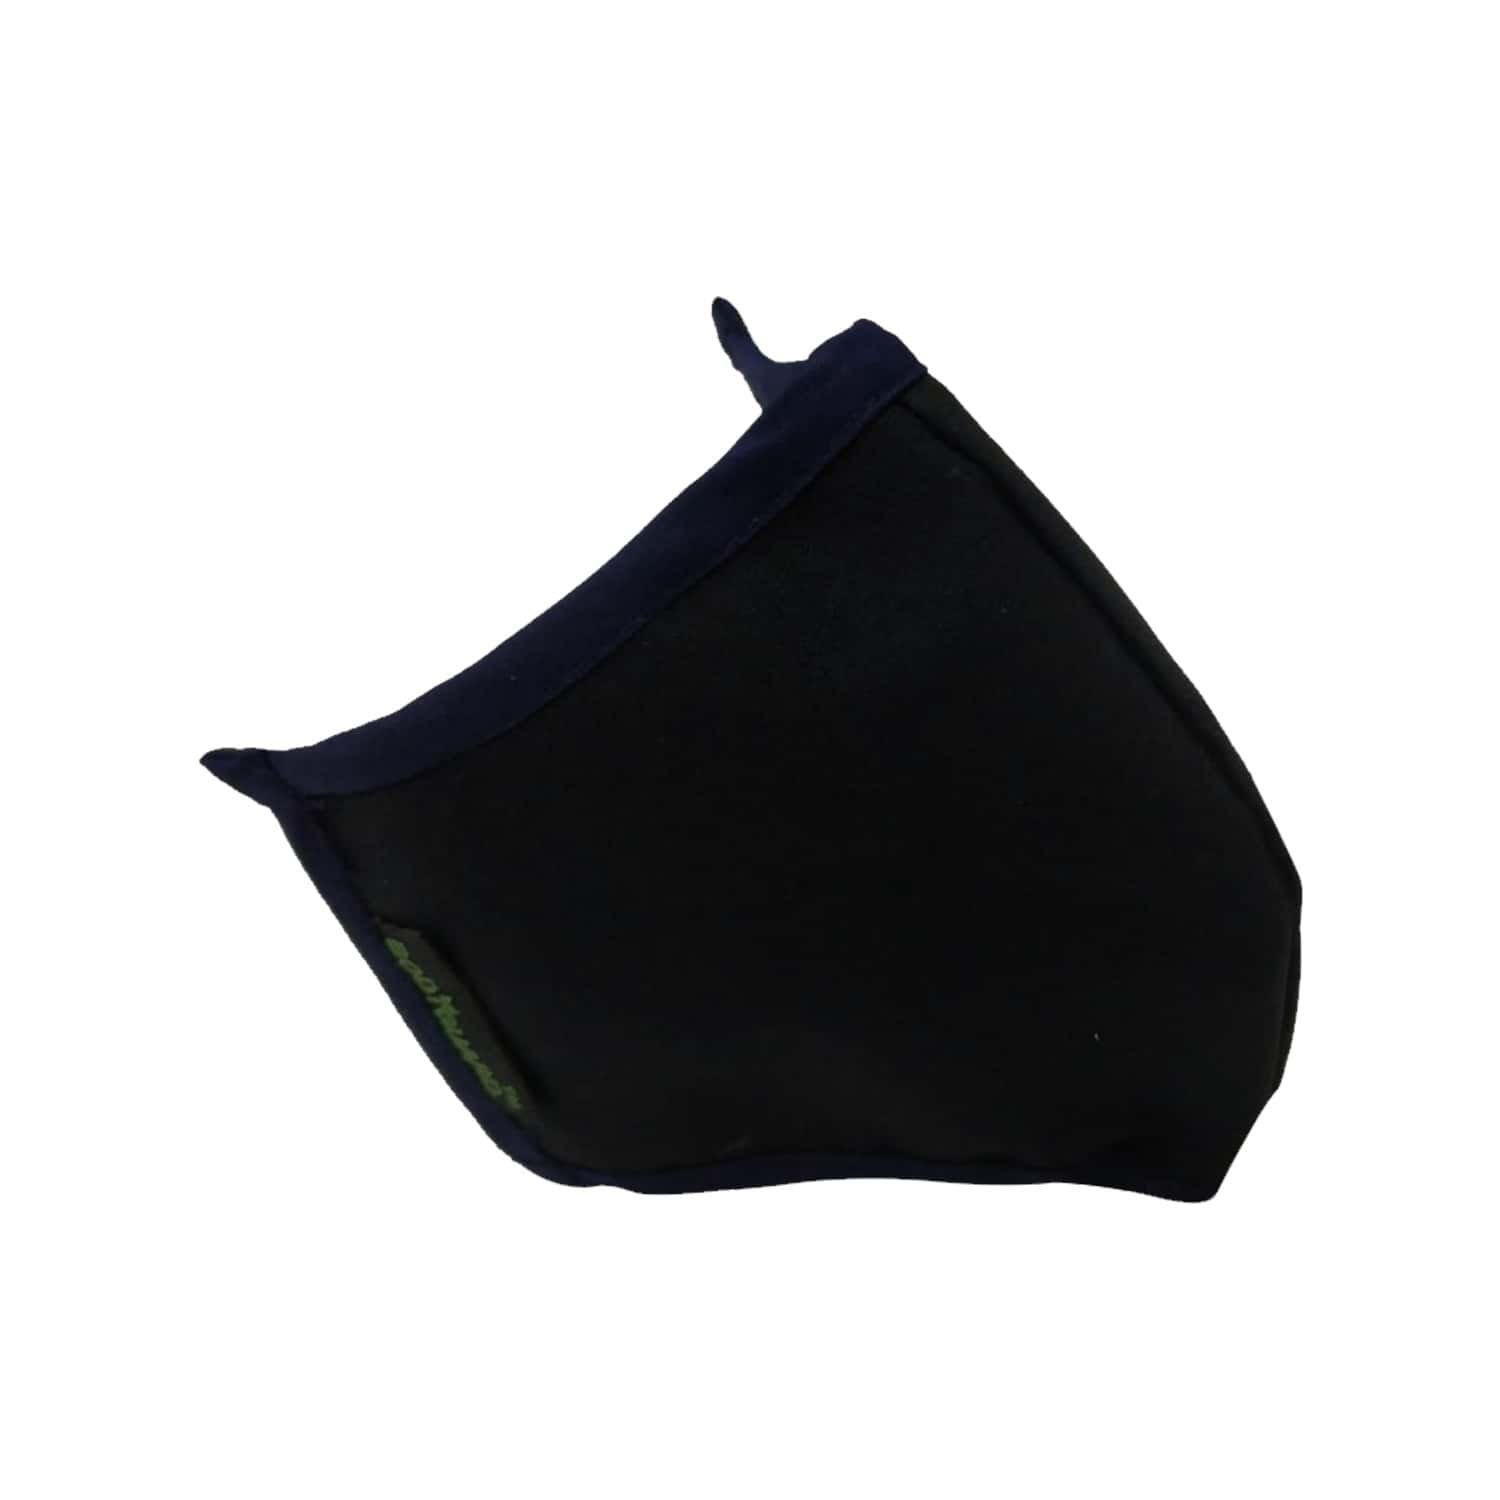 Bodyguard N95 + Pm2.5 Anti Pollution Face Mask With Activated Carbon - Medium